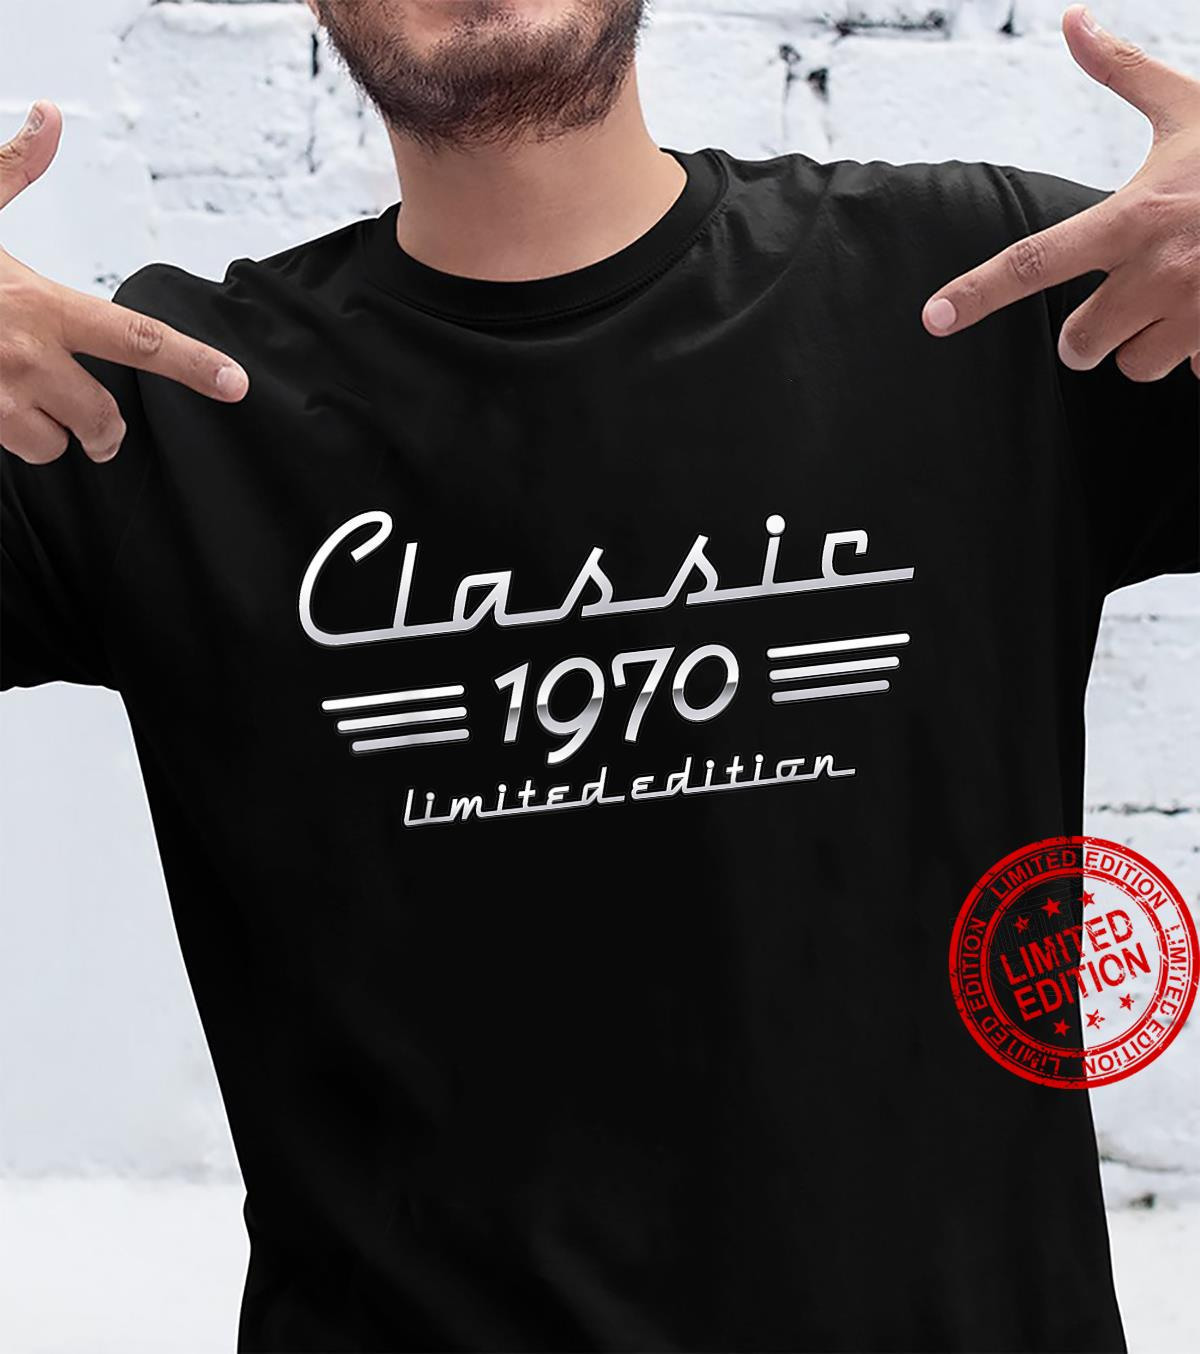 51 Year Old Classic 1970 Limited Edition 51st Birthday Shirt